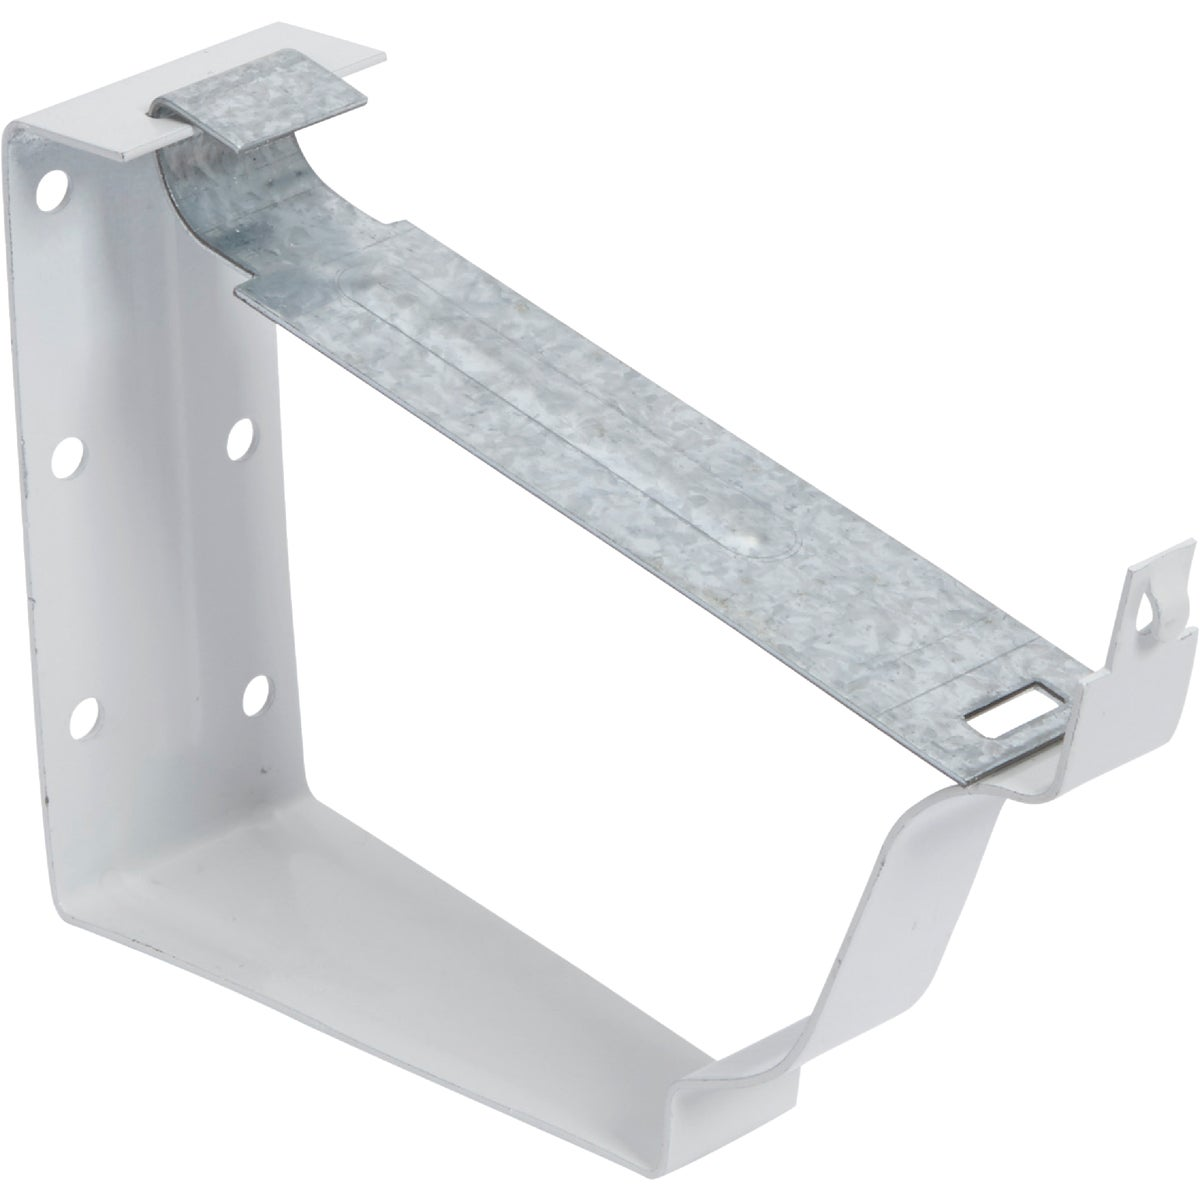 WHT SNAP LOK BRACKET - 33022 by Amerimax Home Prod